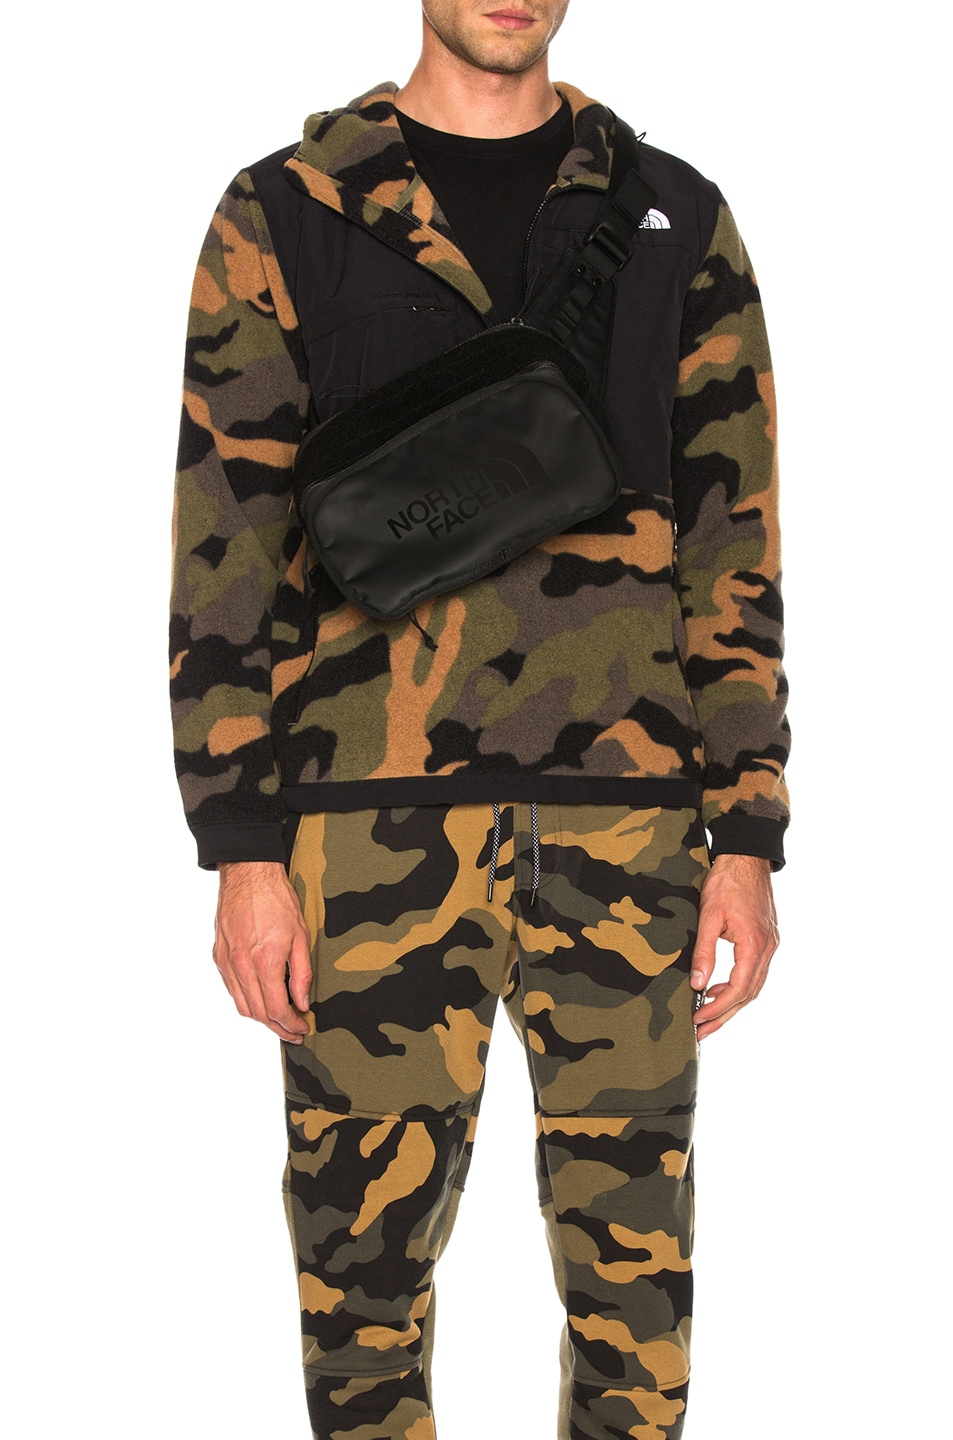 Image 1 of The North Face Denali Anorak in Burnt Olive Green Woods Camo Print